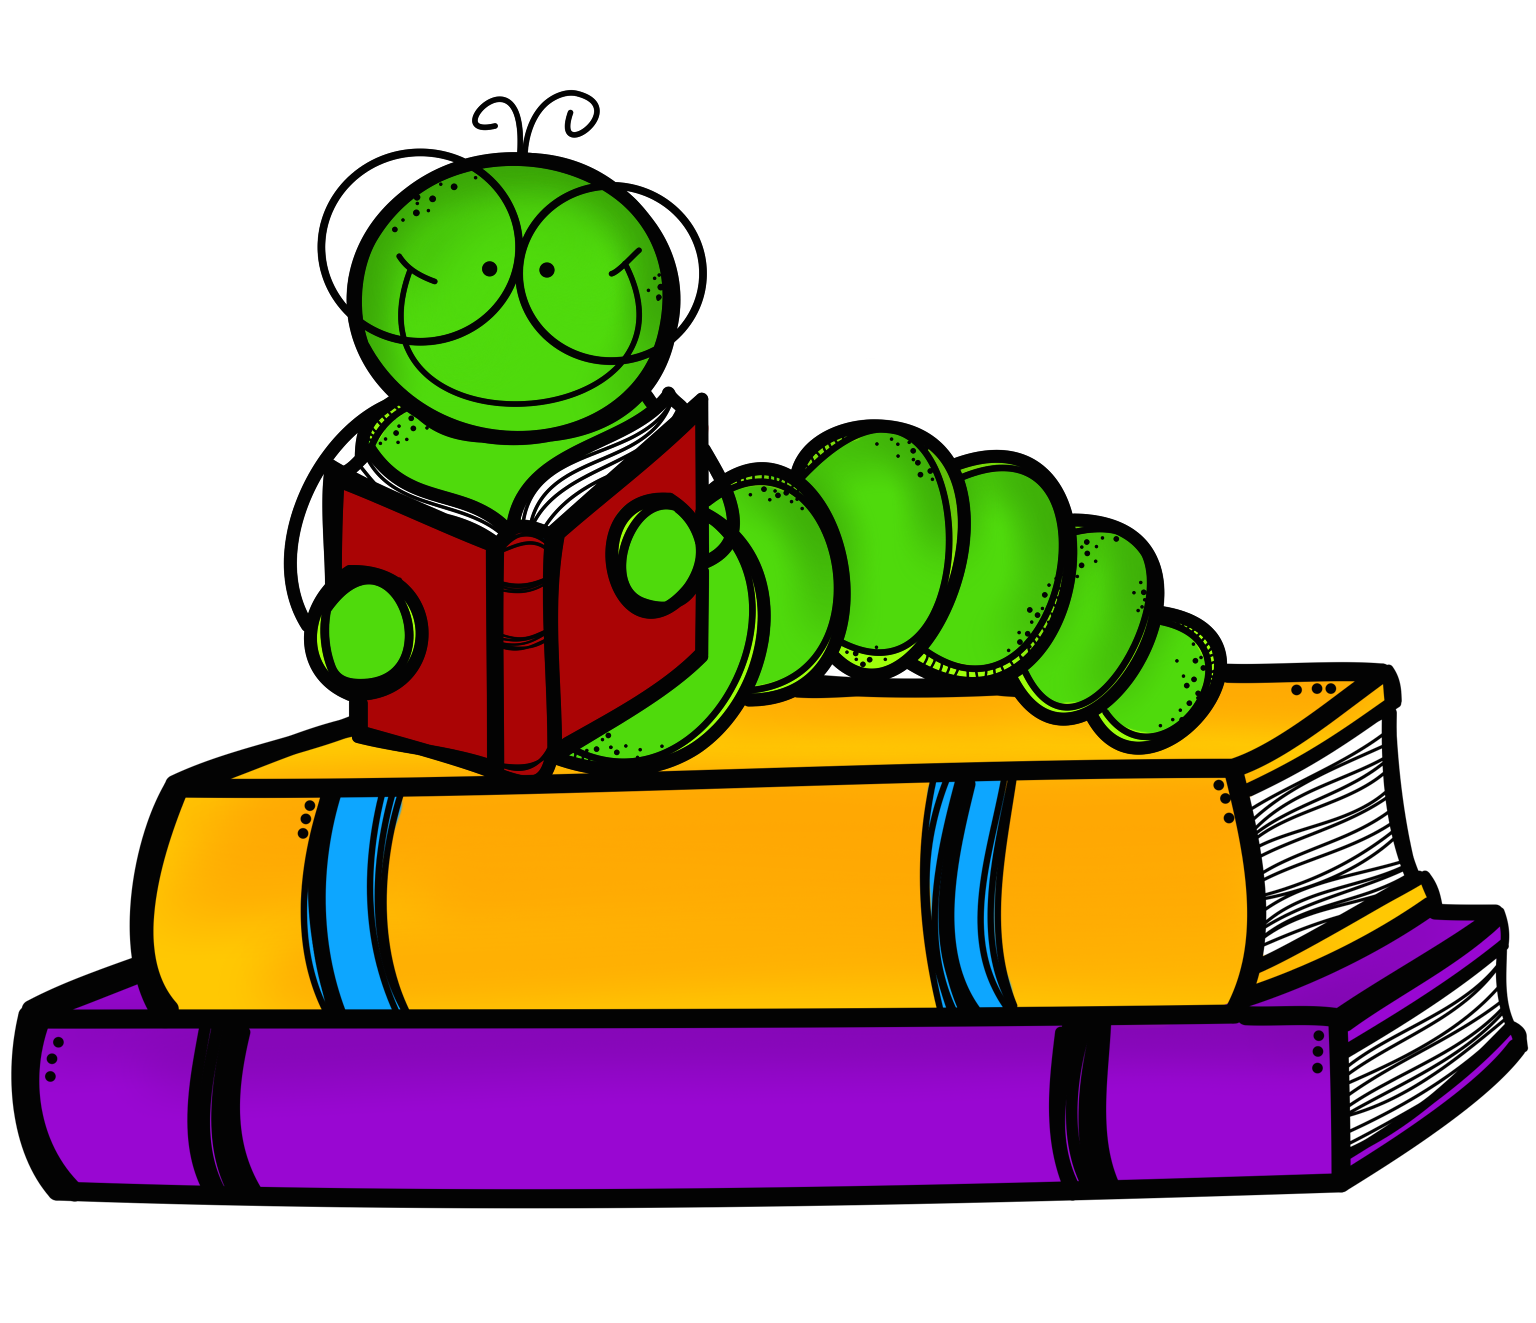 Bookworm clipart bookwork. Stack of books and